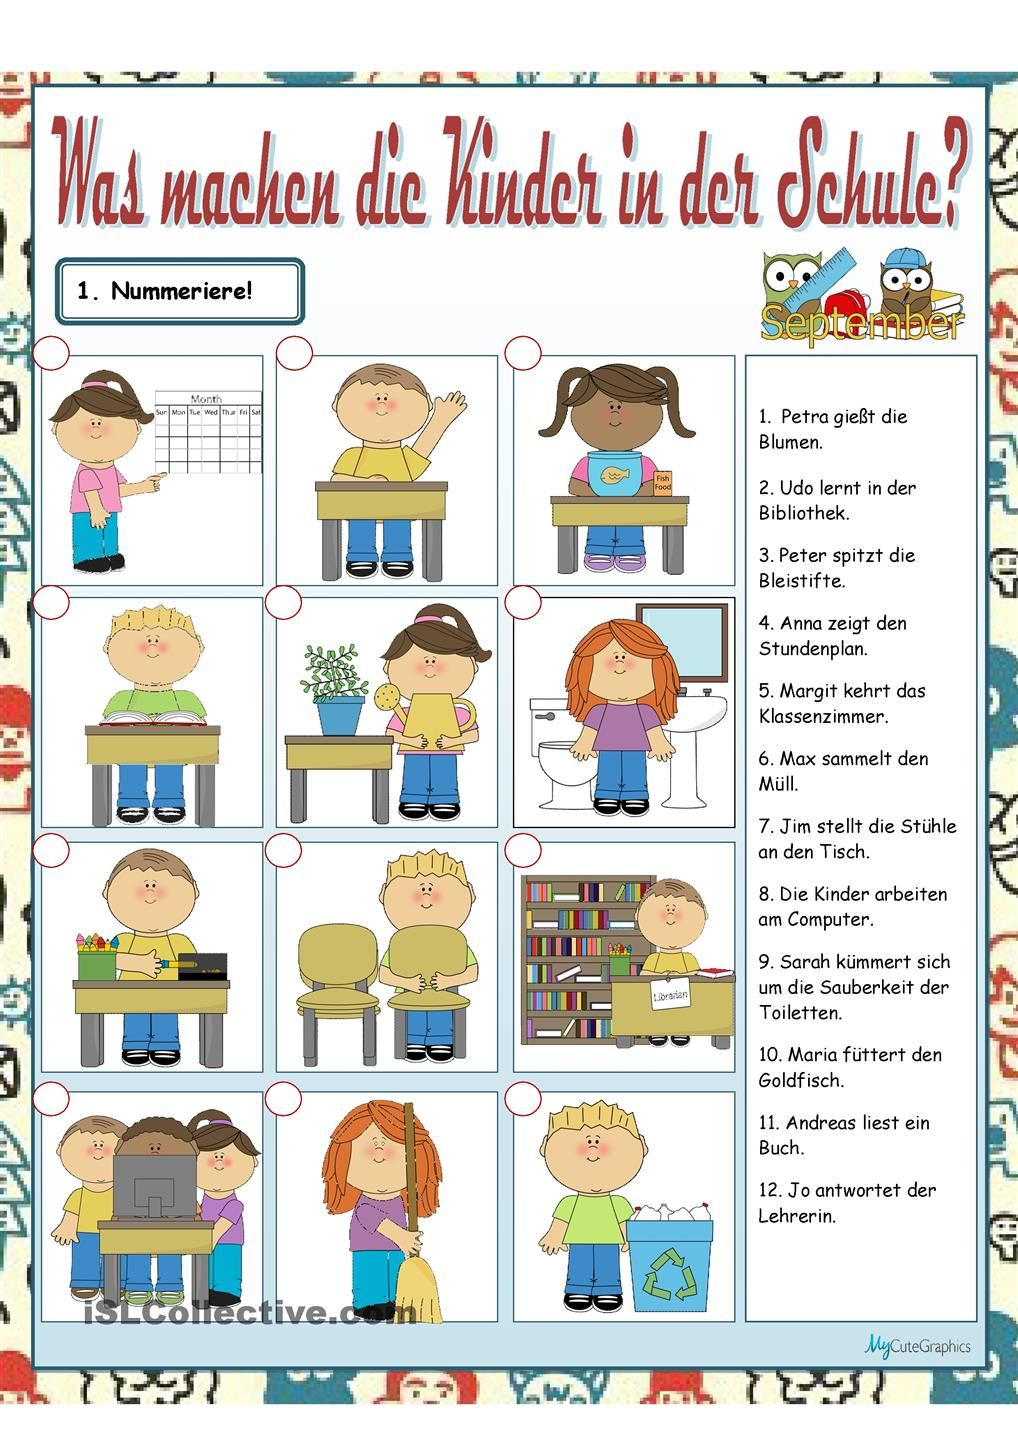 Was machen die Kinder? | Deutsch | Pinterest | German, Deutsch and ...